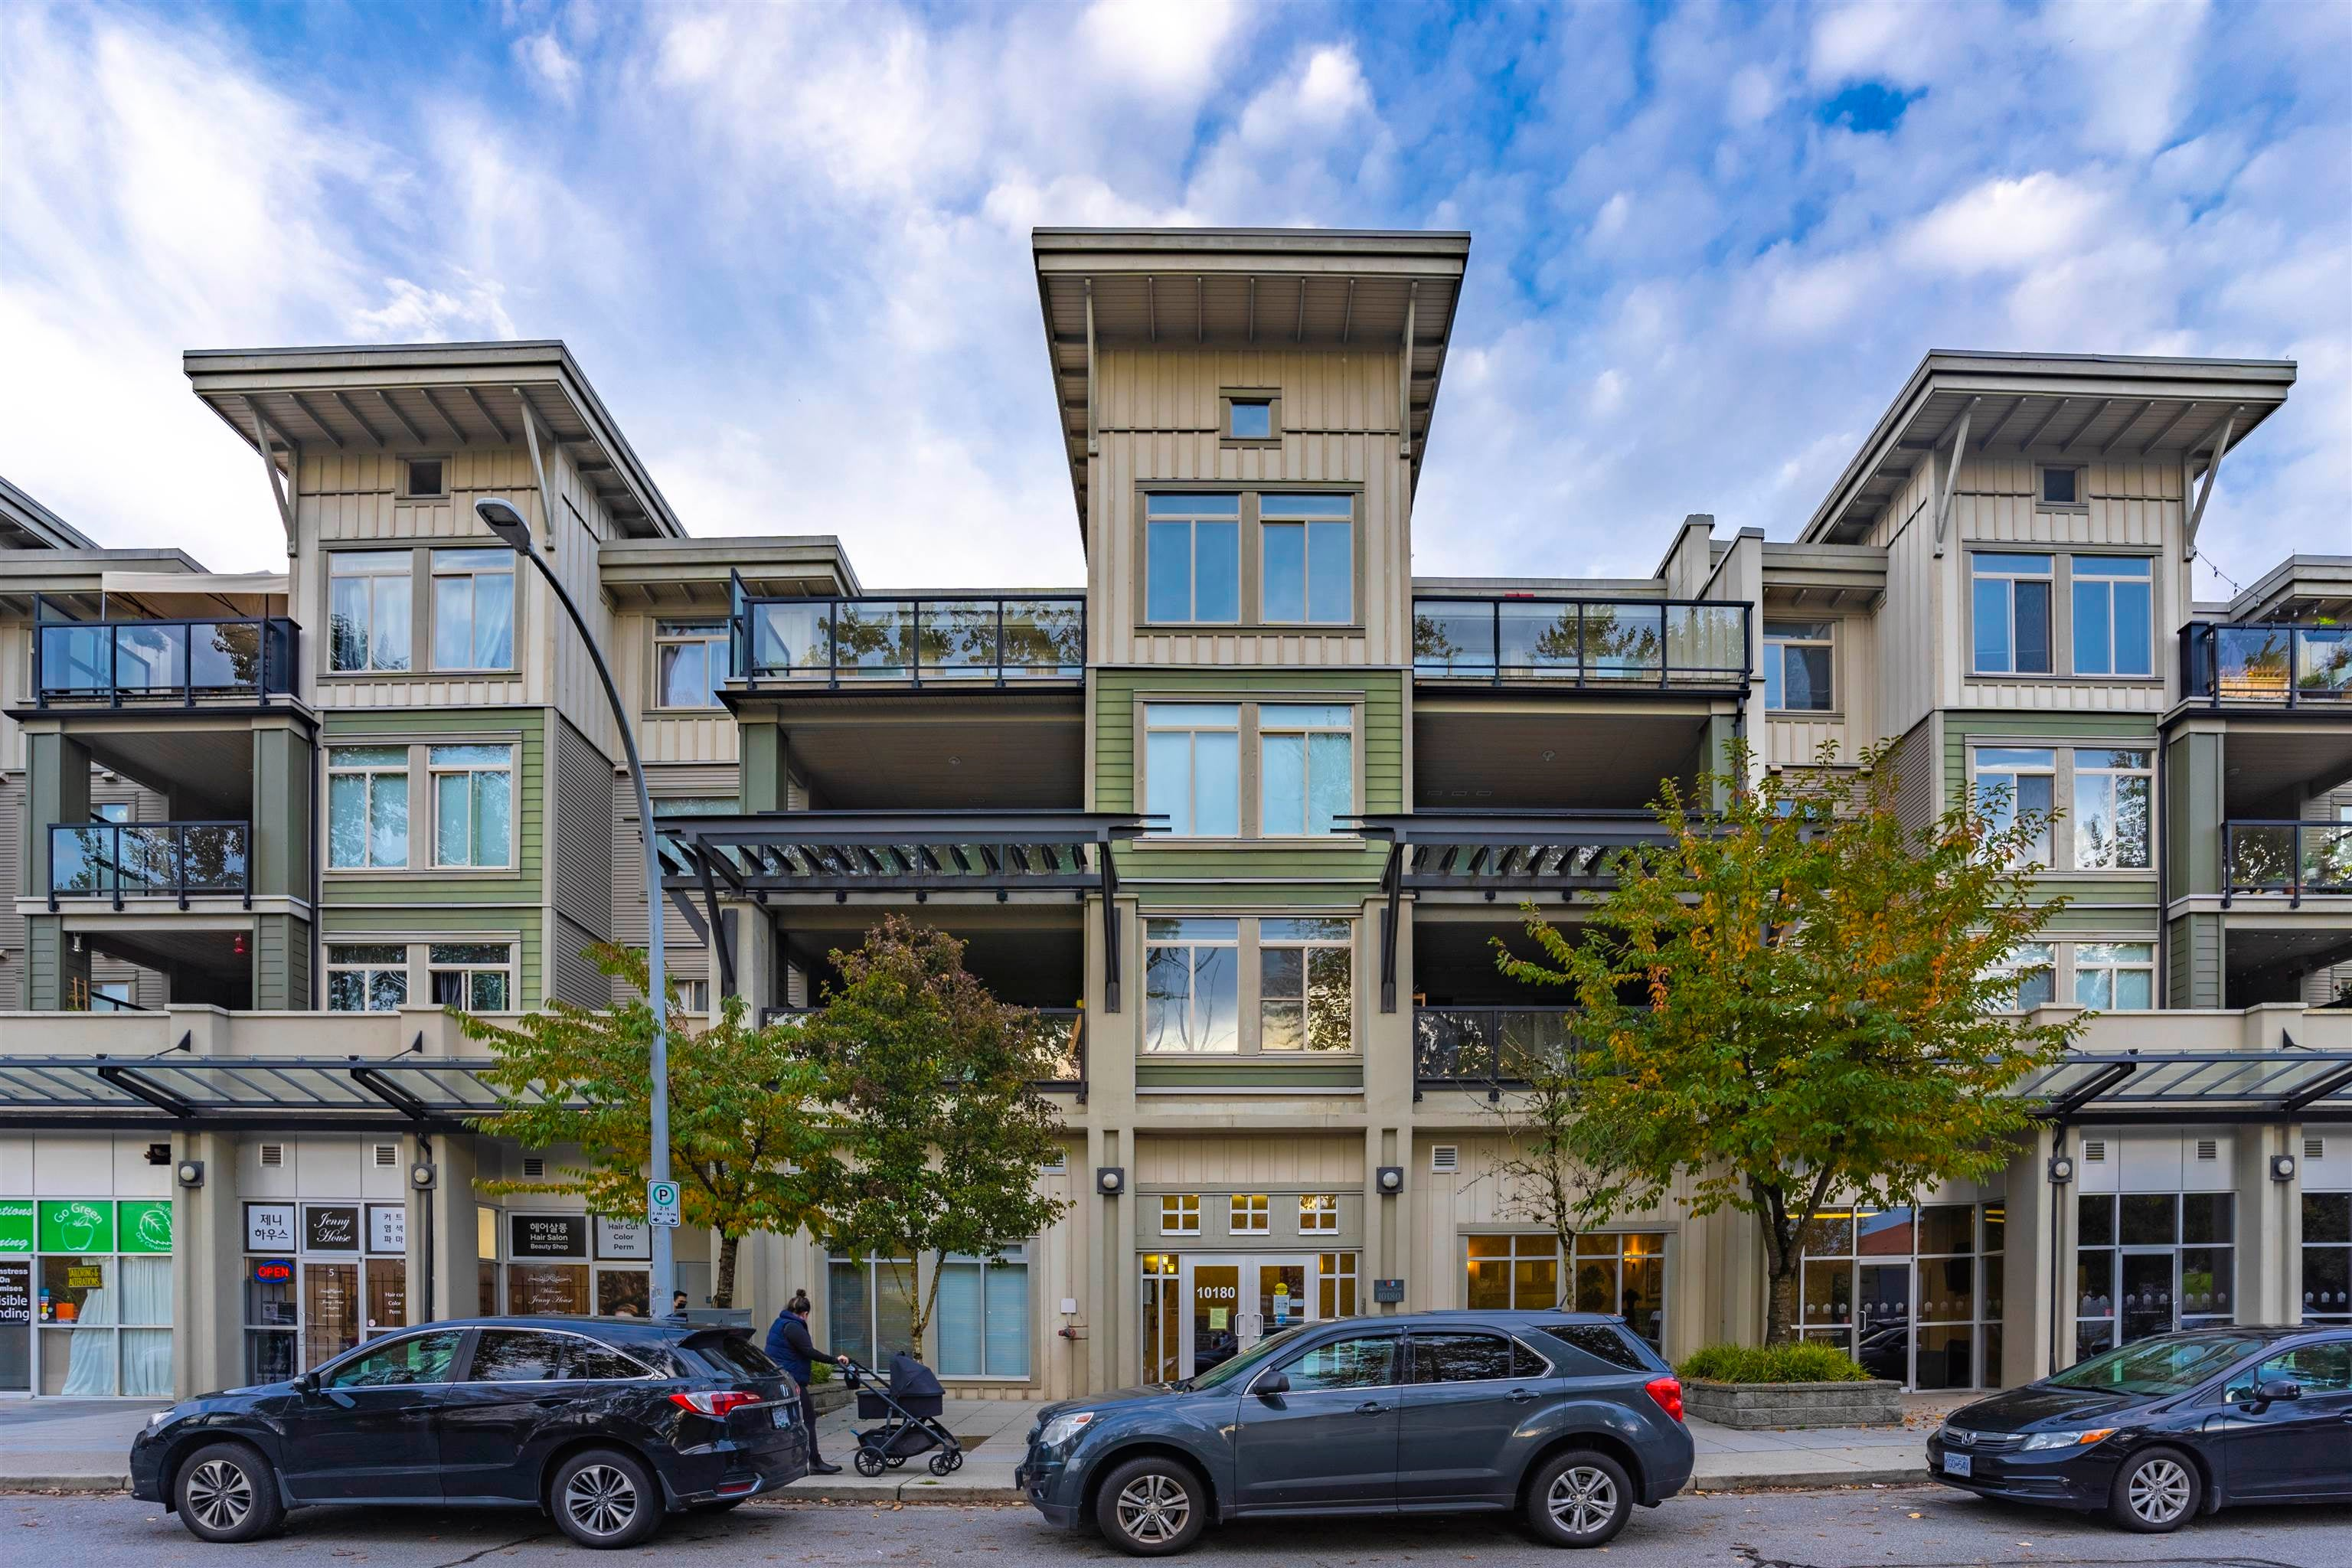 417 10180 153 STREET - Guildford Apartment/Condo for sale, 2 Bedrooms (R2628158)